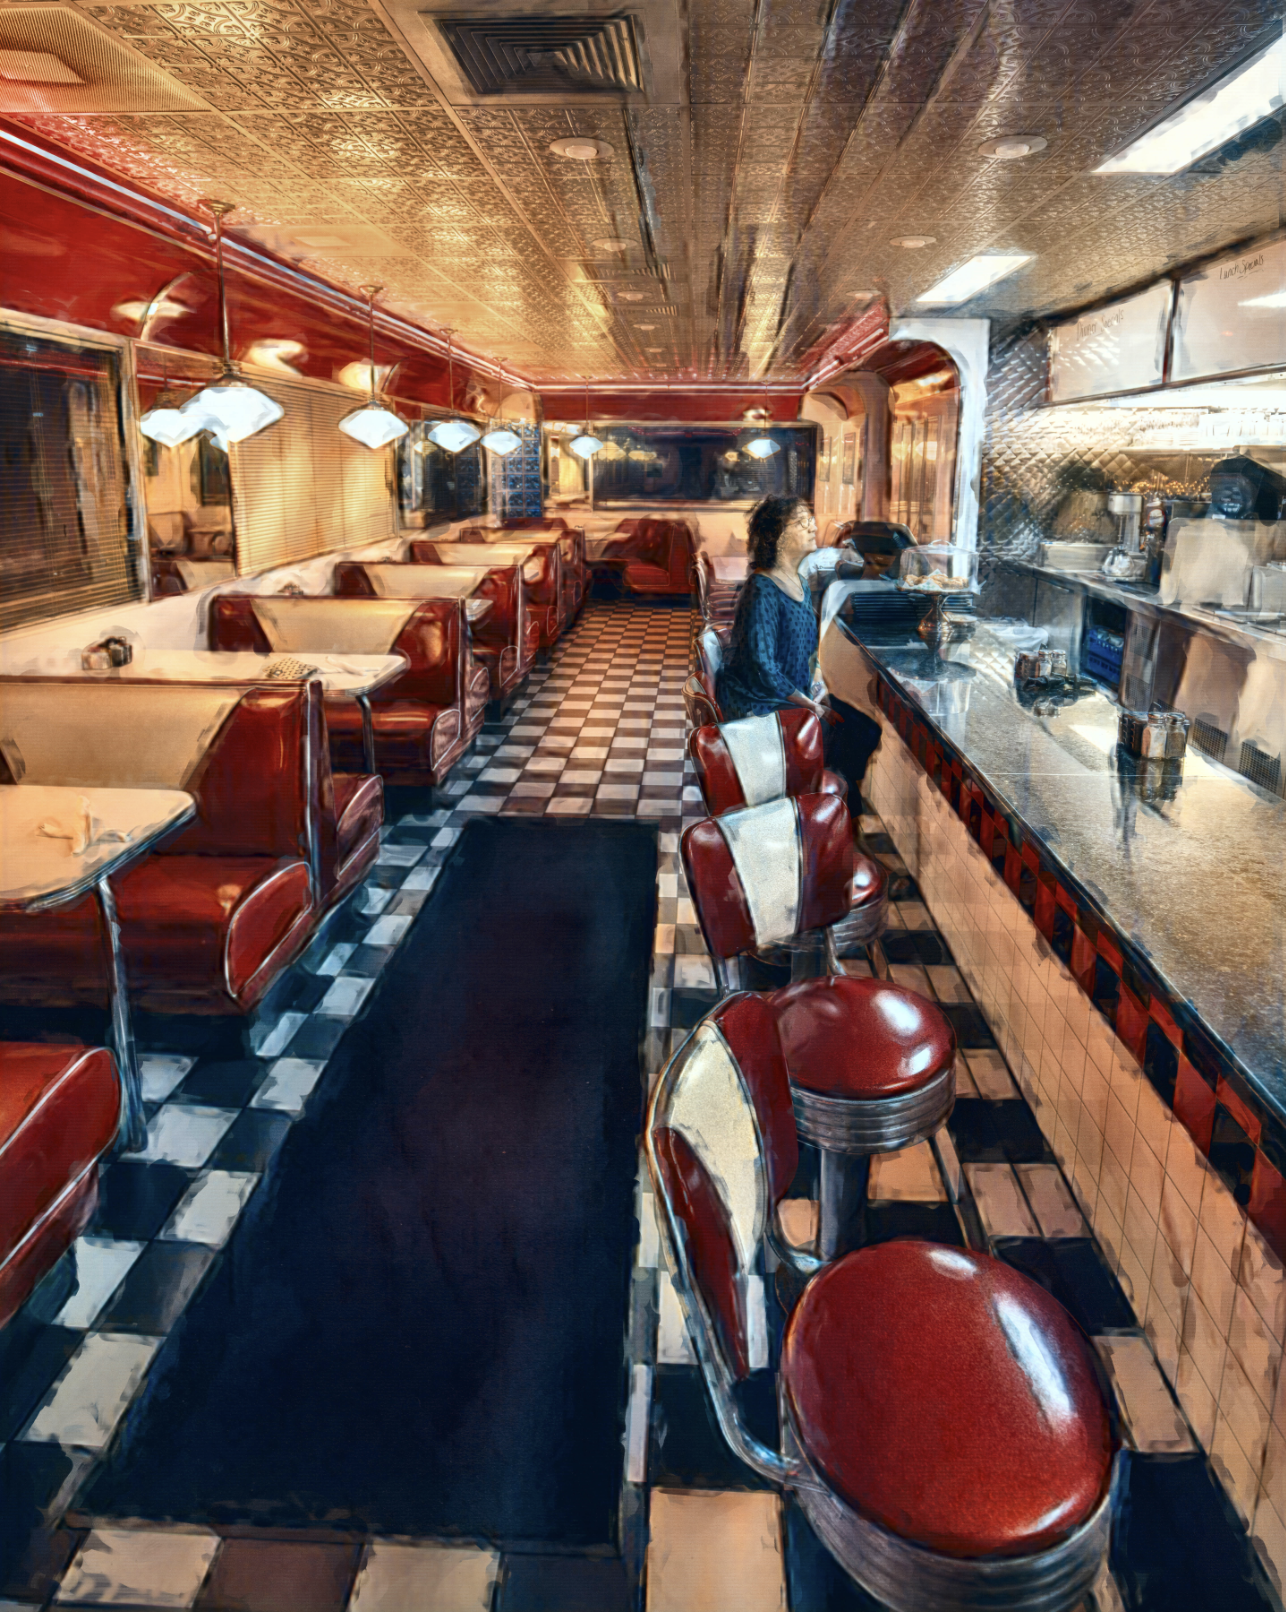 'Distance Diner Dining #2', digitally painted photograph by Dean Stecker ($90) ⎼ 'Matted in 11 x 14 frame.'